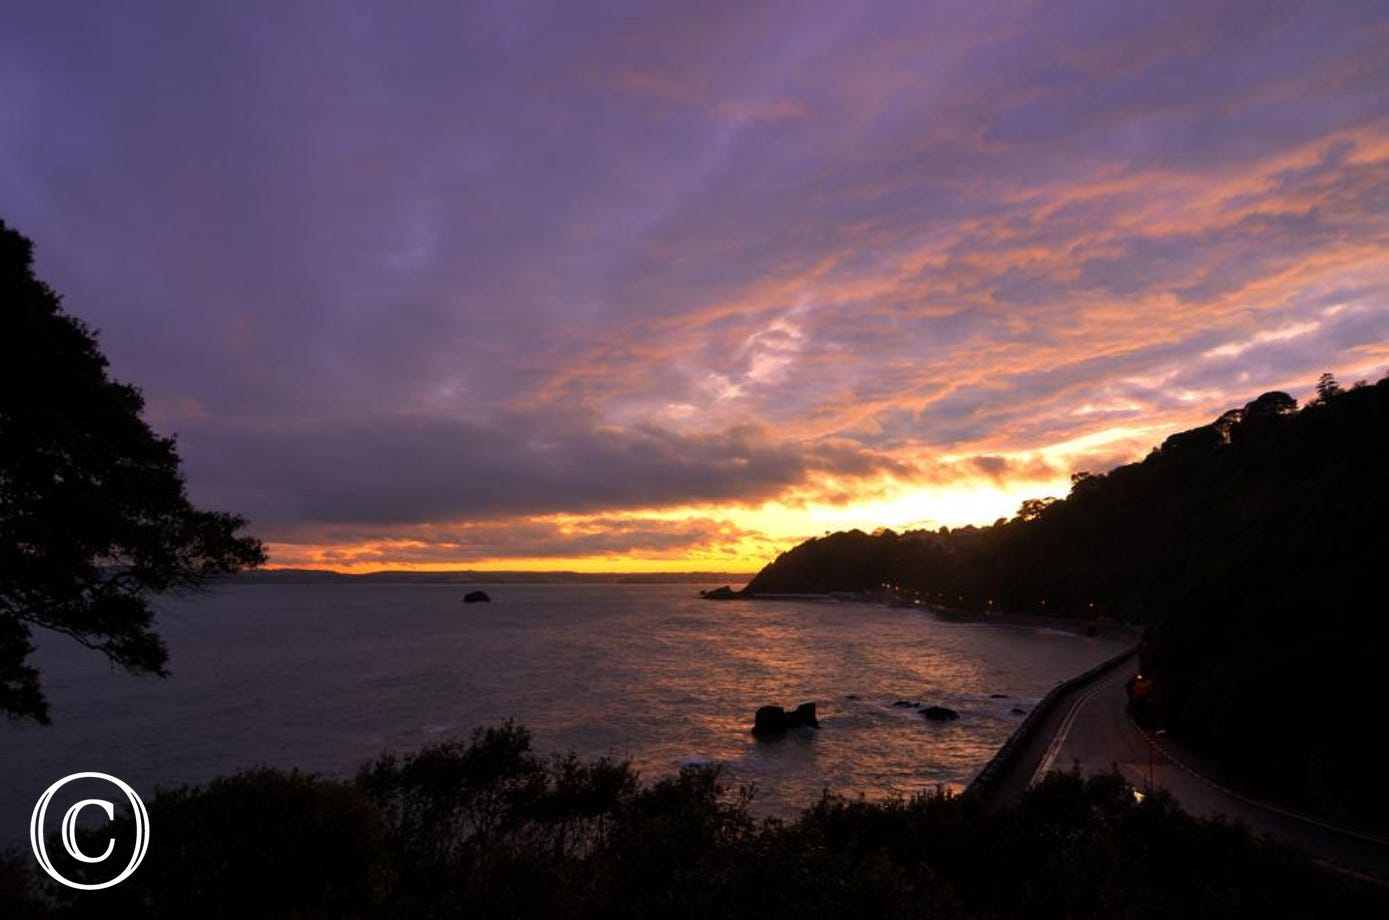 Sunset over Meadfoot beach from Kilmorie Studio